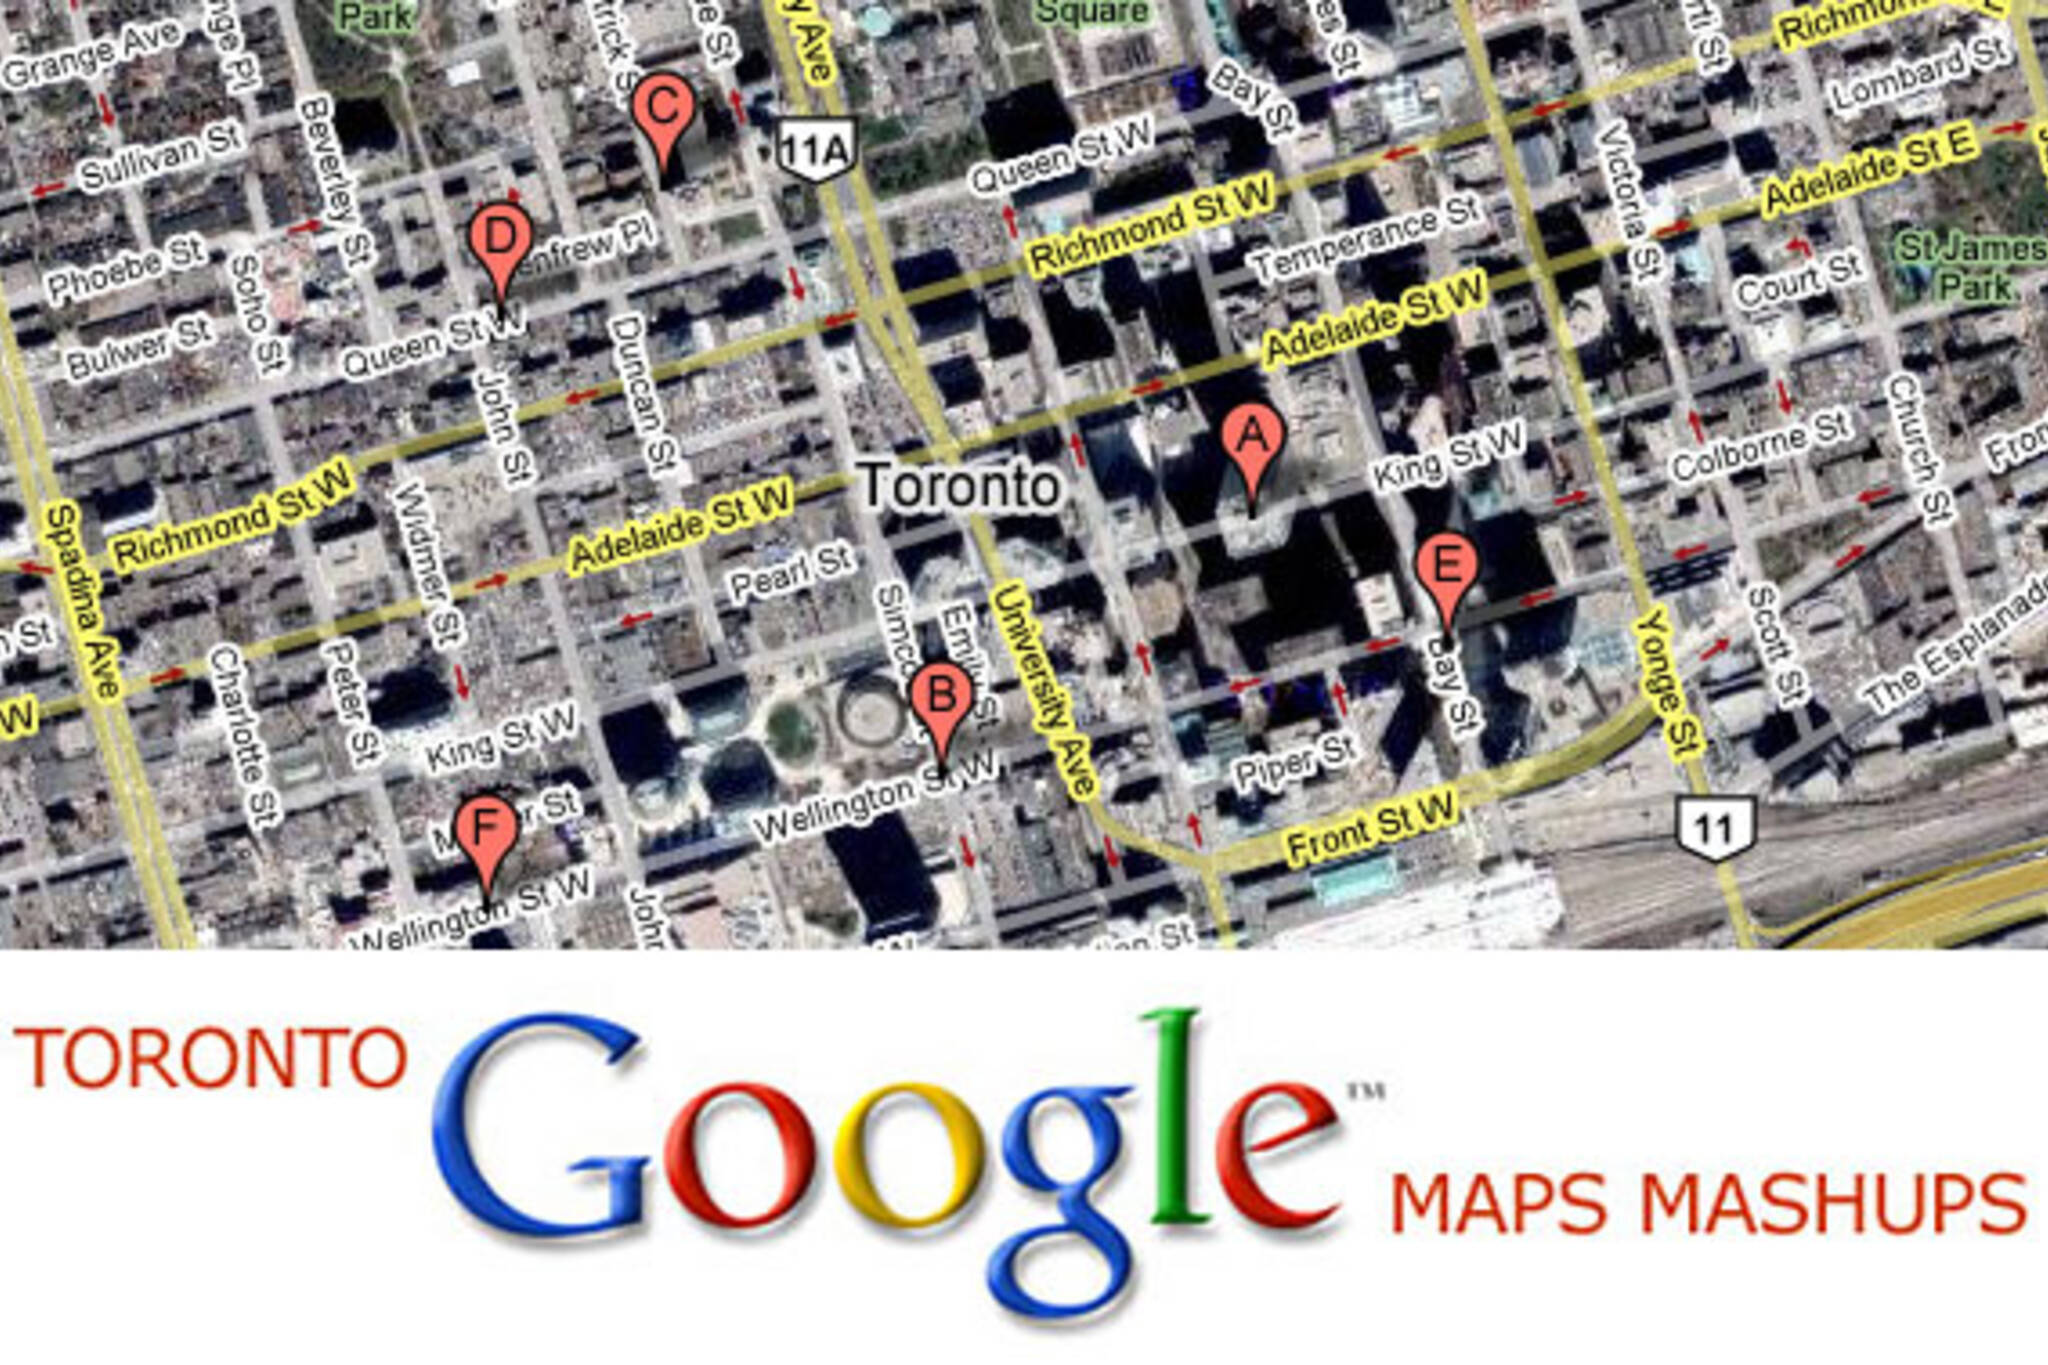 Toronto Google Maps Mashups List